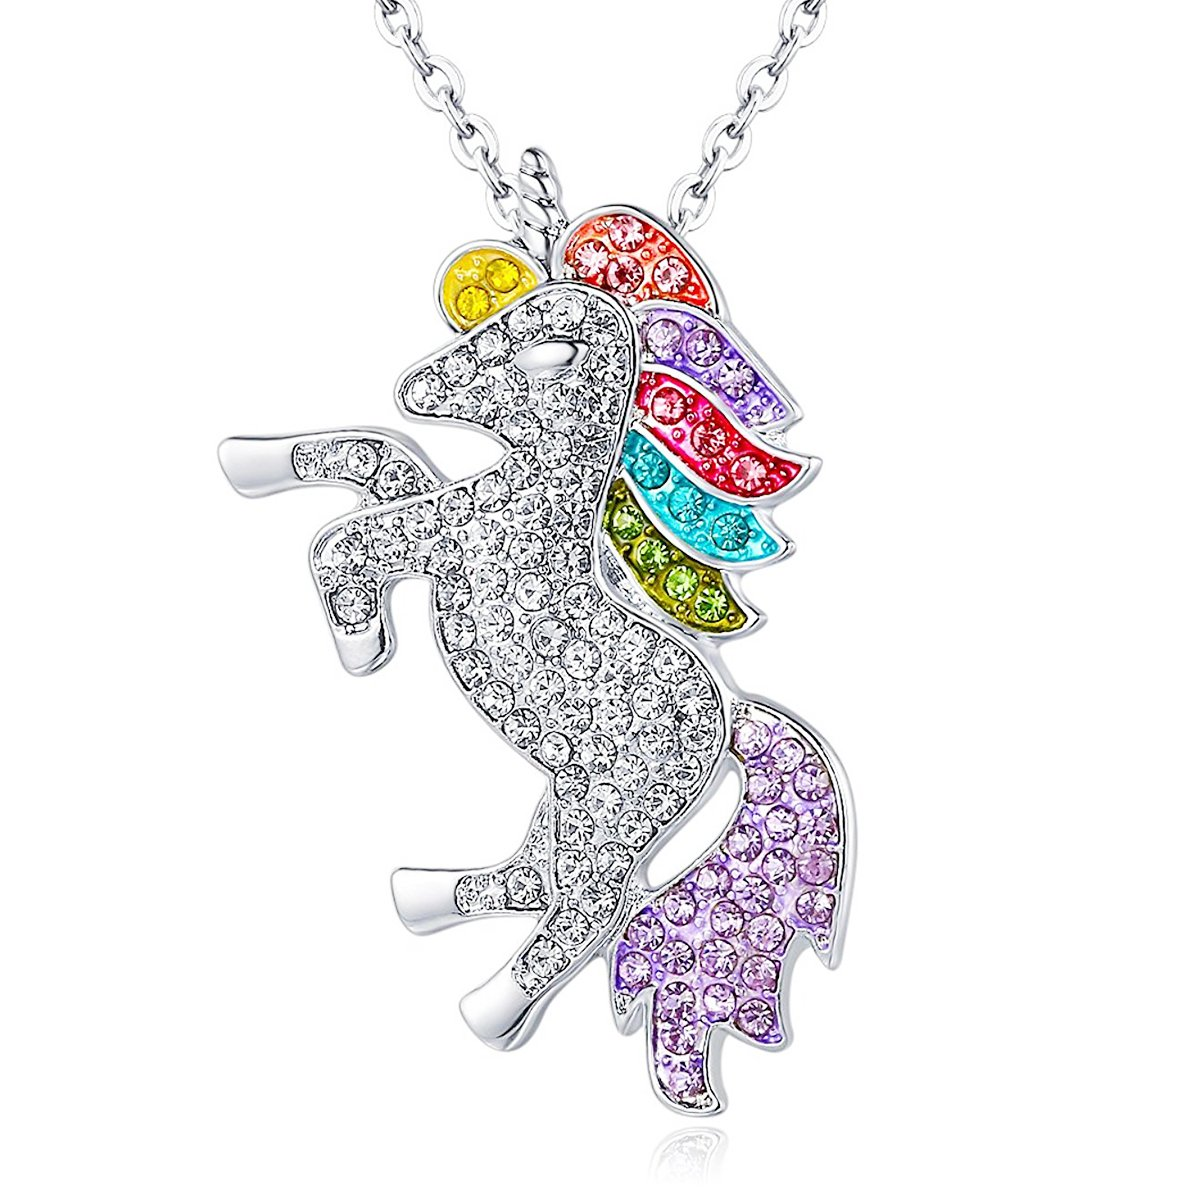 ALoveSoul Silver Tone Little Princess Rainbow Unicorn Pendant Girl Ladies Fashion Necklace Gift for women XM001